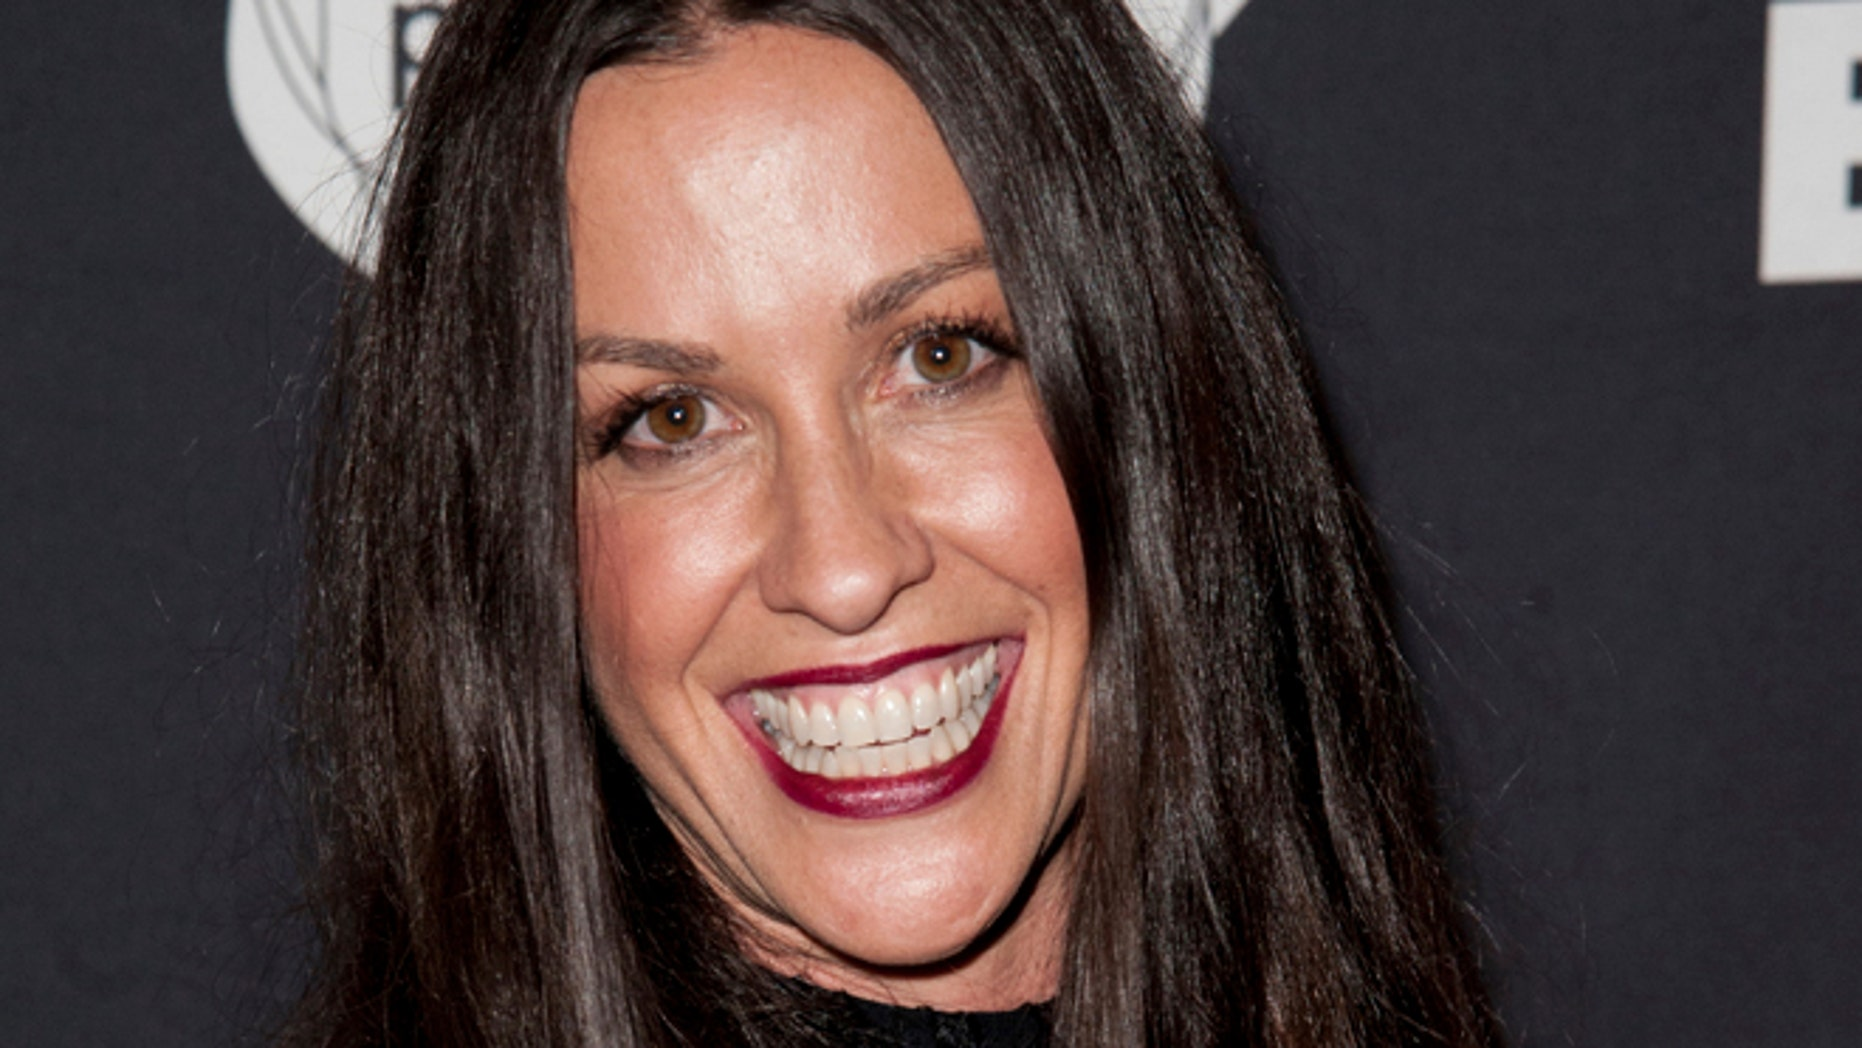 FILE - This June 20, 2014 file photo Alanis Morissette arrives at the 4th Annual Production Of The 24 Hour Plays After-Party in Santa Monica, Calif.